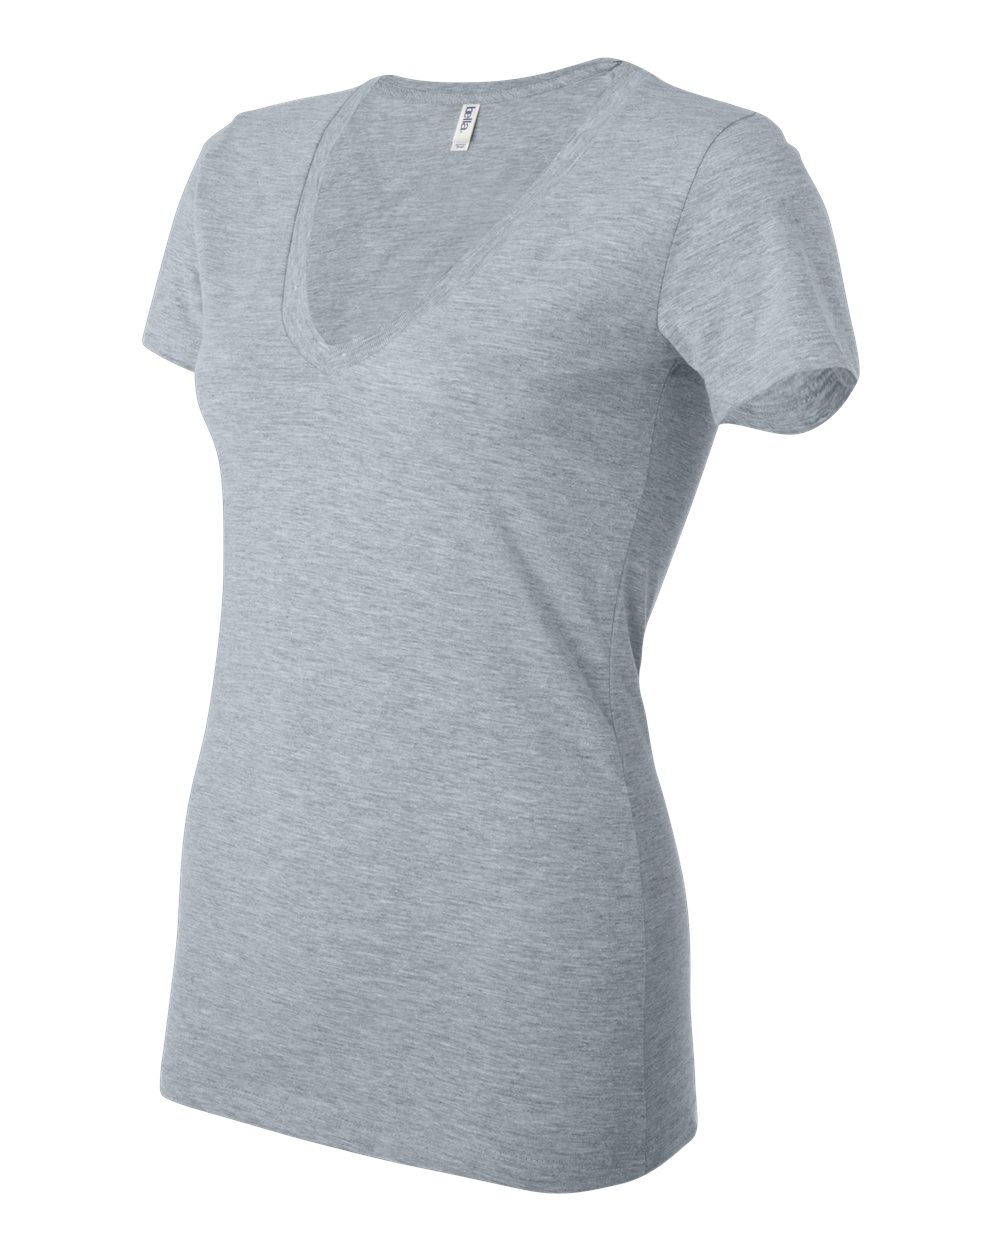 Bella-Canvas-Women-039-s-Jersey-Short-Sleeve-Deep-V-Neck-T-Shirt-B6035-S-2XL thumbnail 66